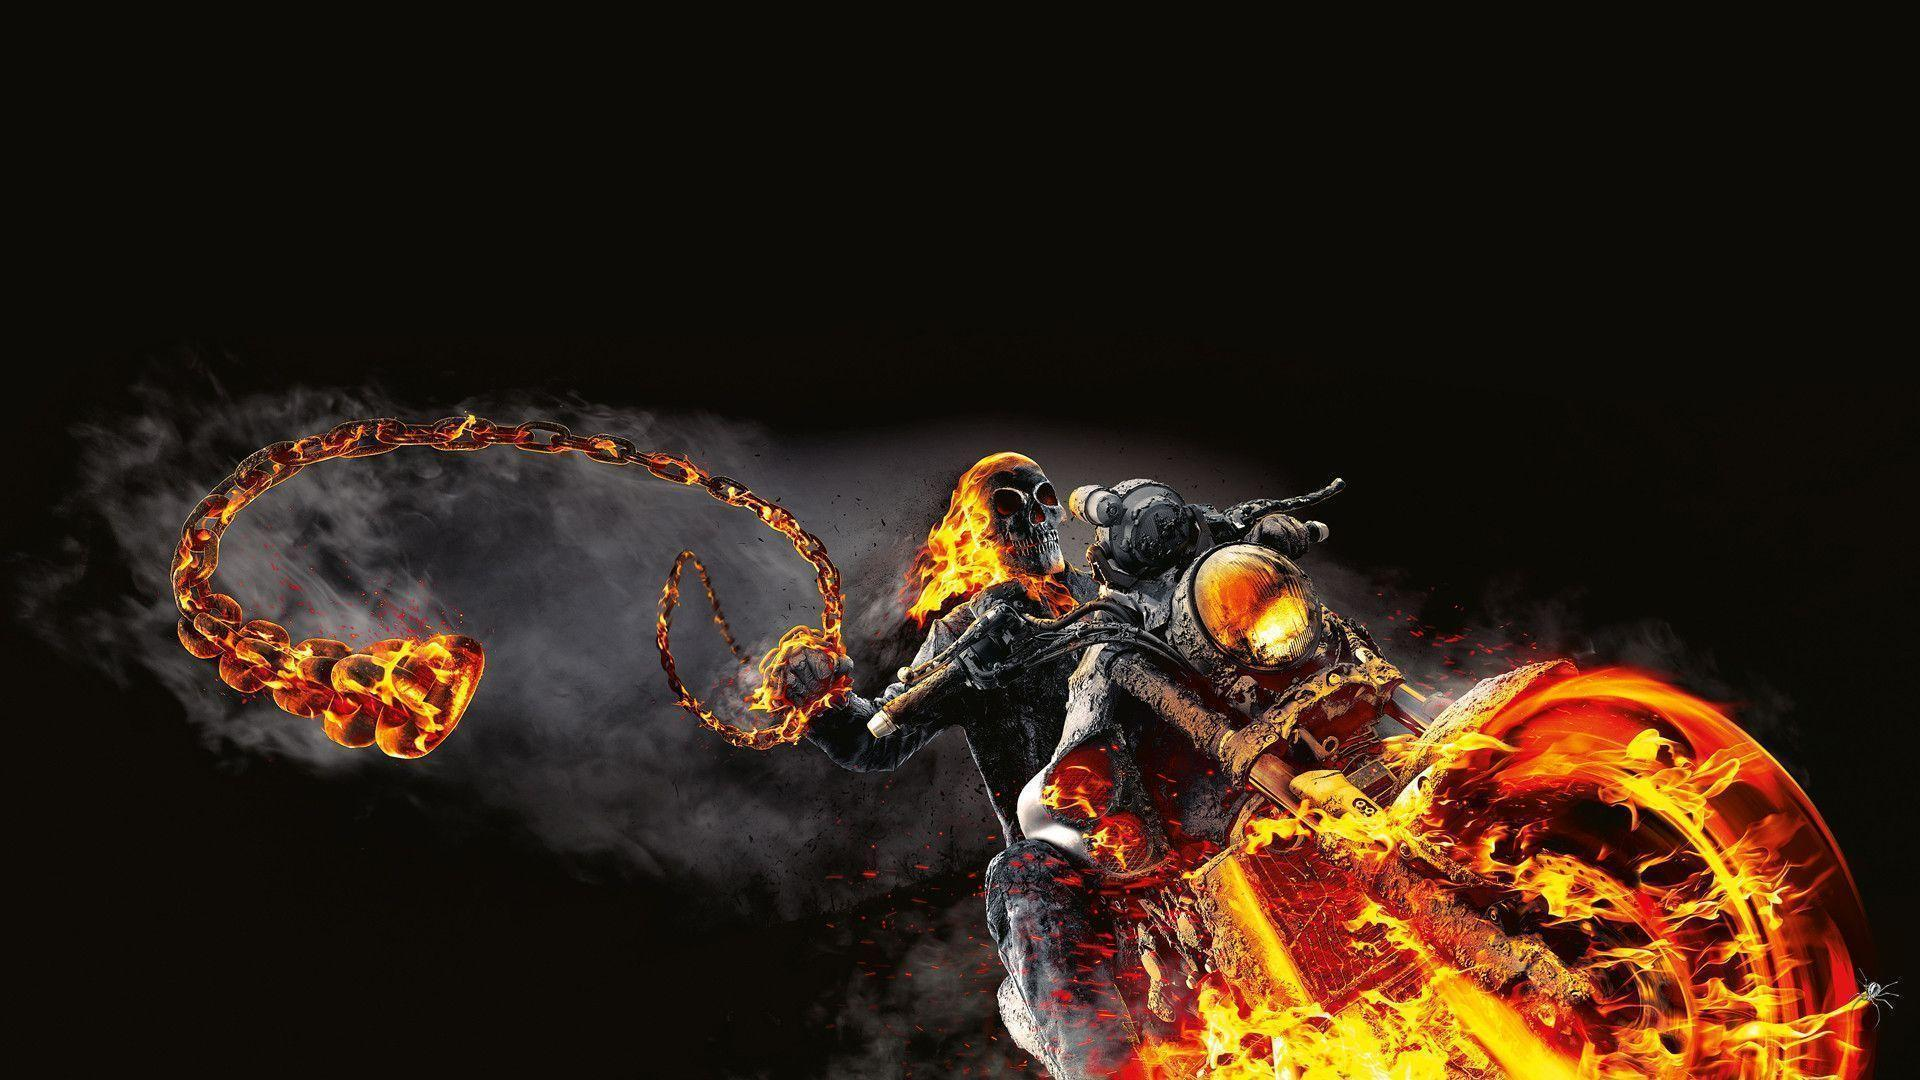 Ghost Rider 2 Wallpapers - Wallpaper Cave